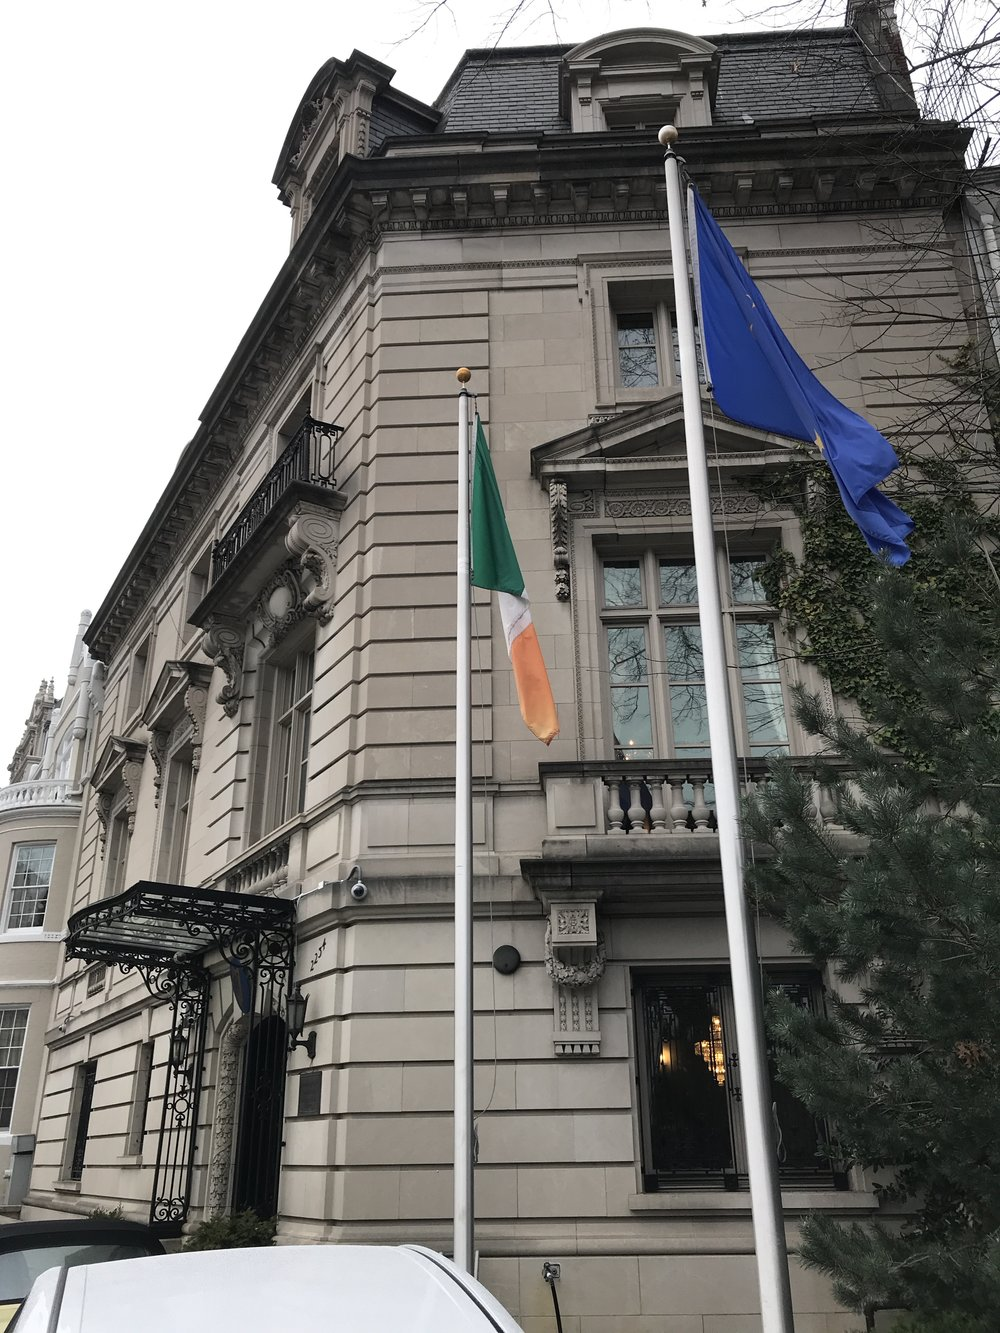 The Embassy of Ireland.